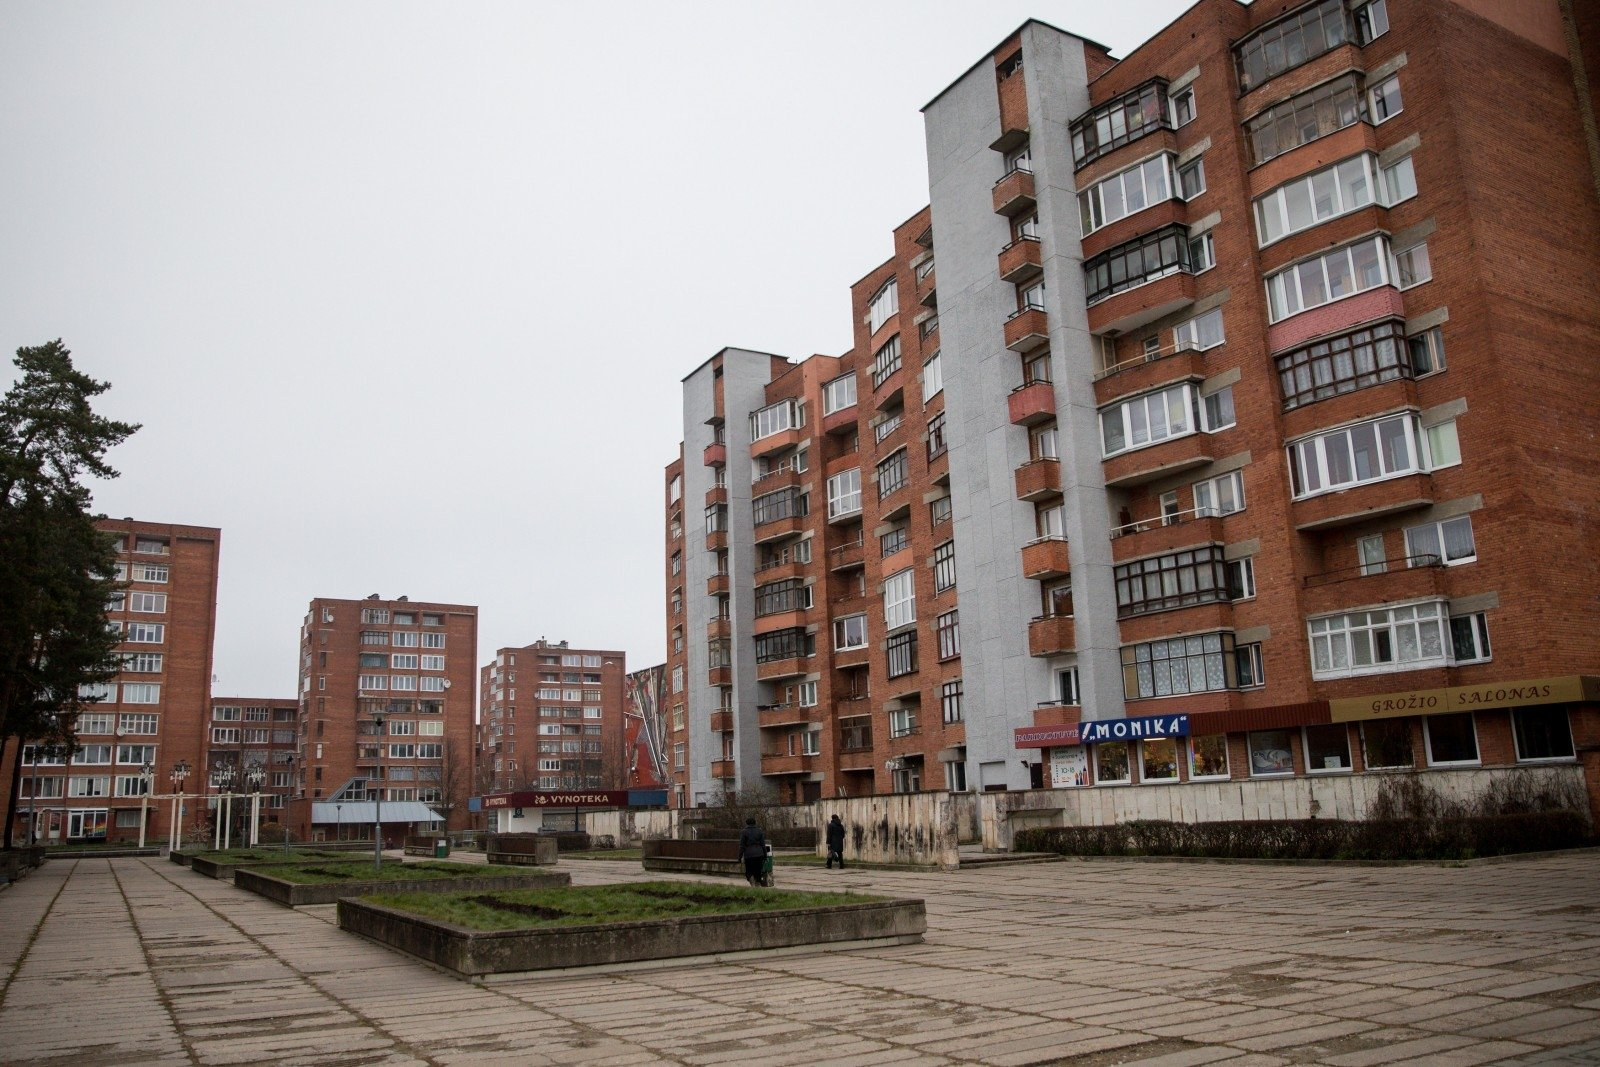 Visaginas - town built for workers of Soviet nuclear plant